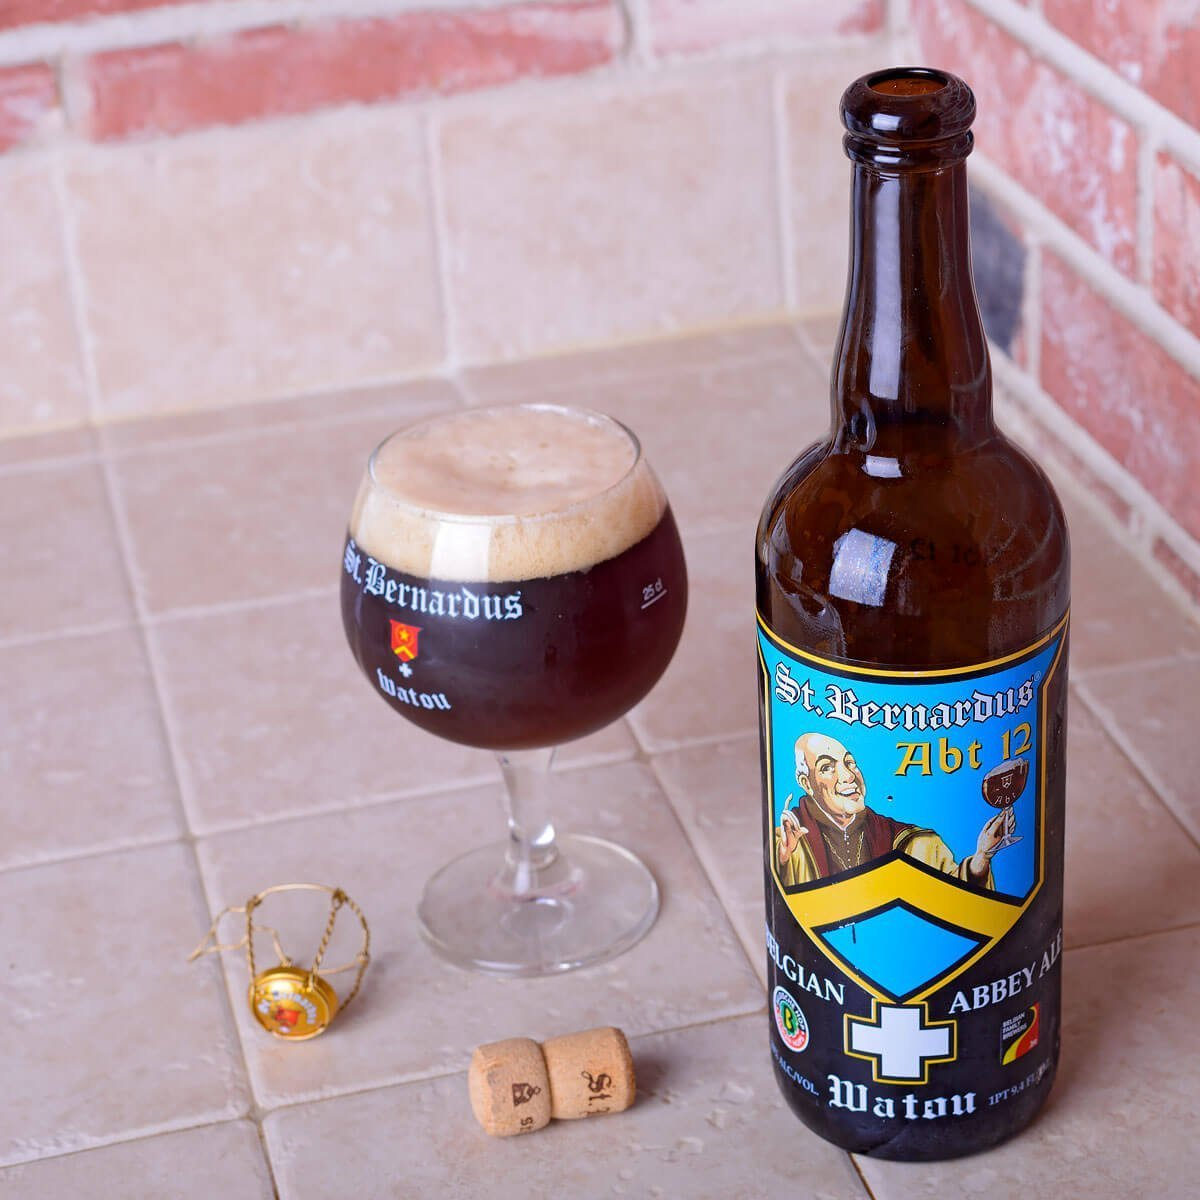 St. Bernardus Abt 12, a Quadrupel by Brouwerij St. Bernardus NV blends dark and tree fruits, various spices with pumpernickel and rye.